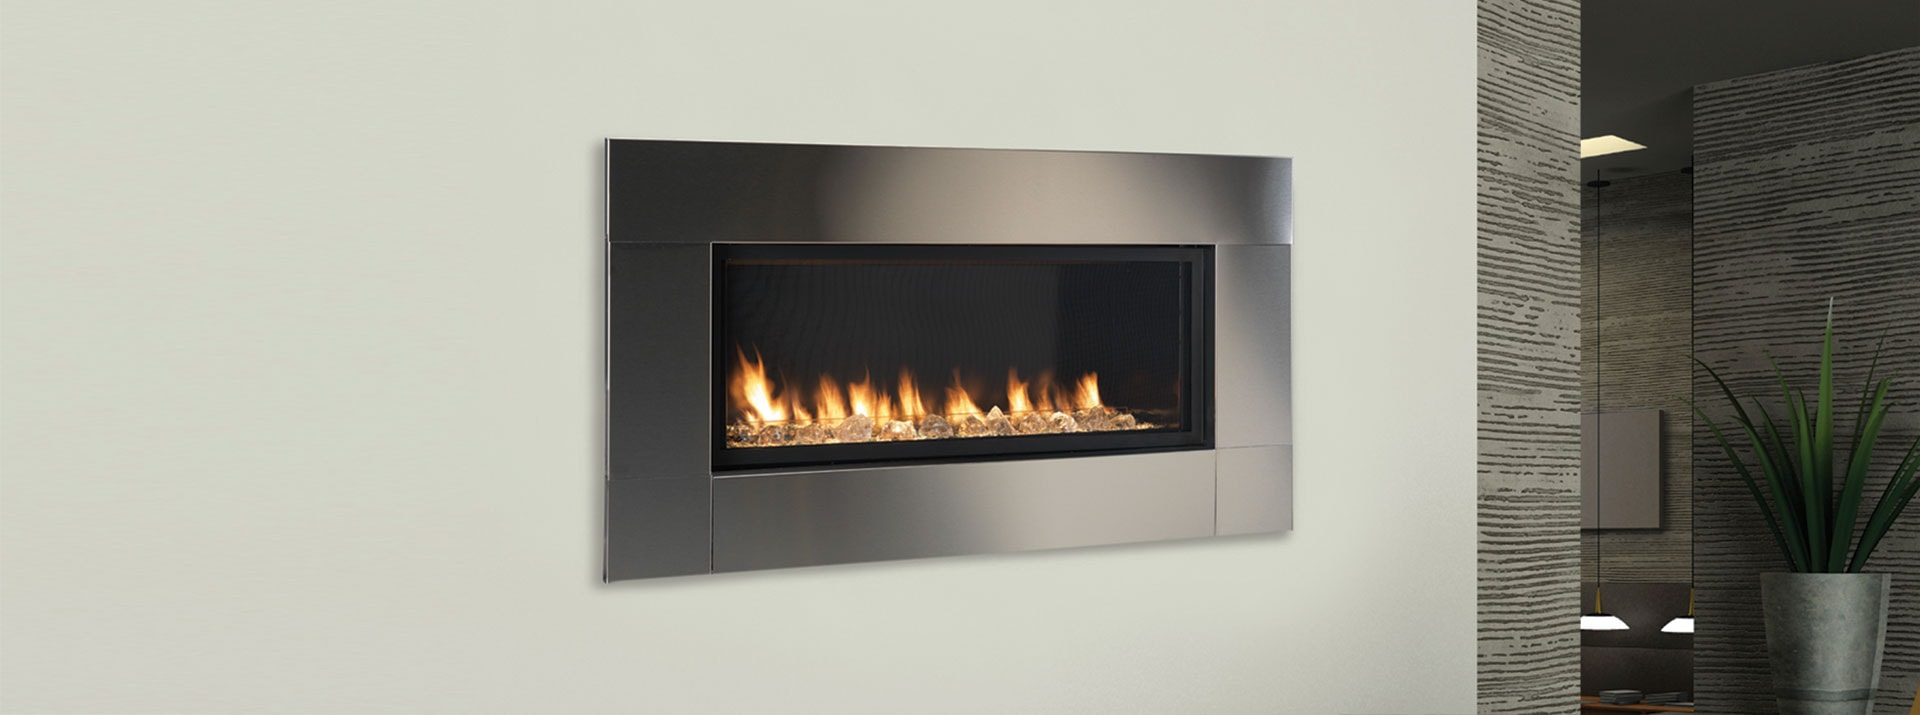 Artisan Vent Free Gas Fireplaces Monessen Hearth